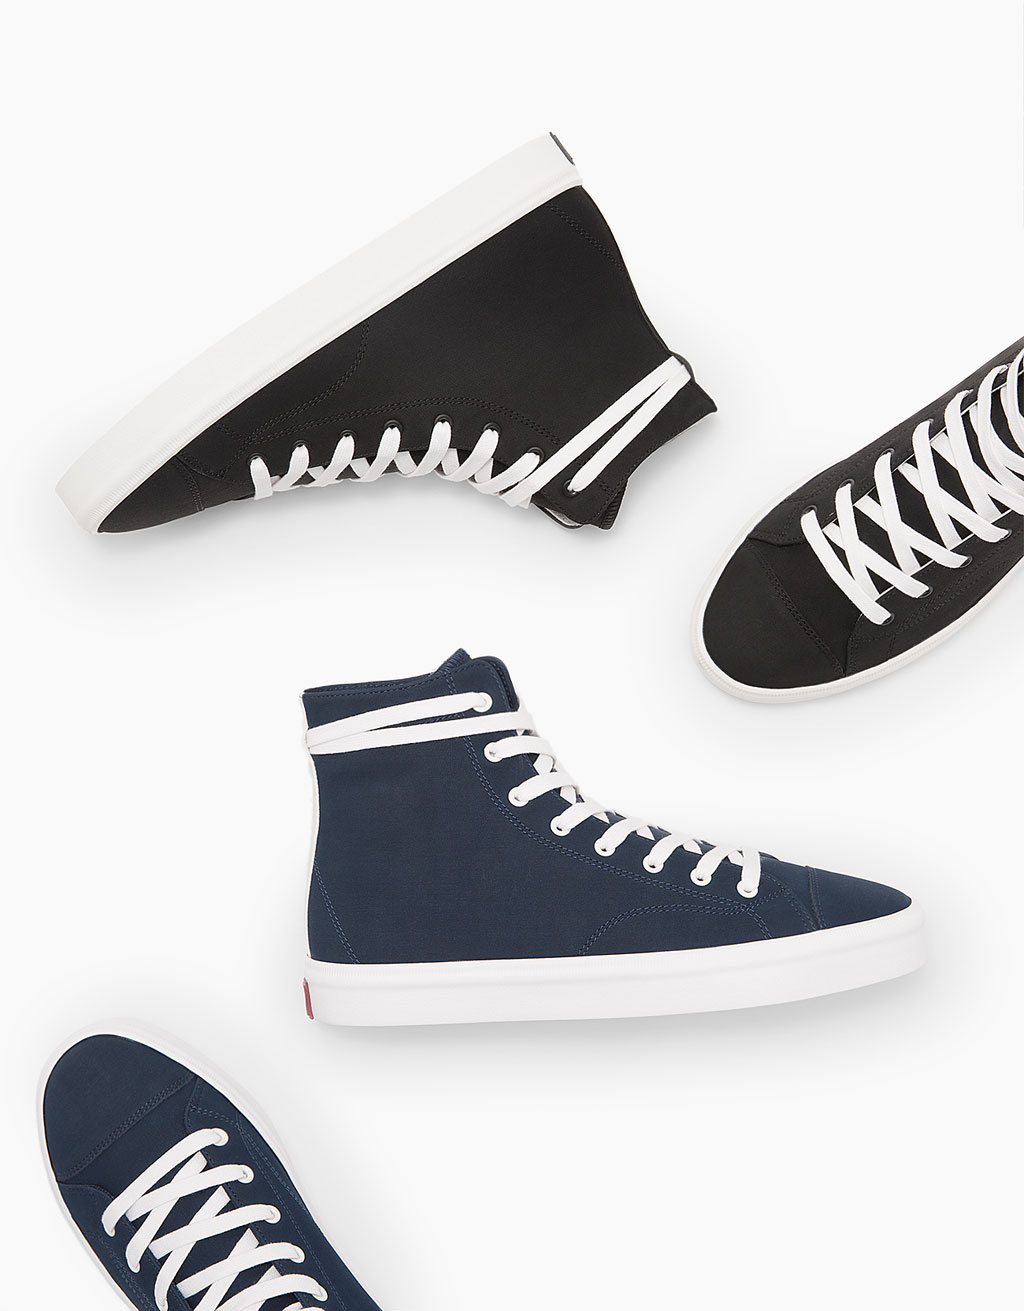 Men's high top sneakers